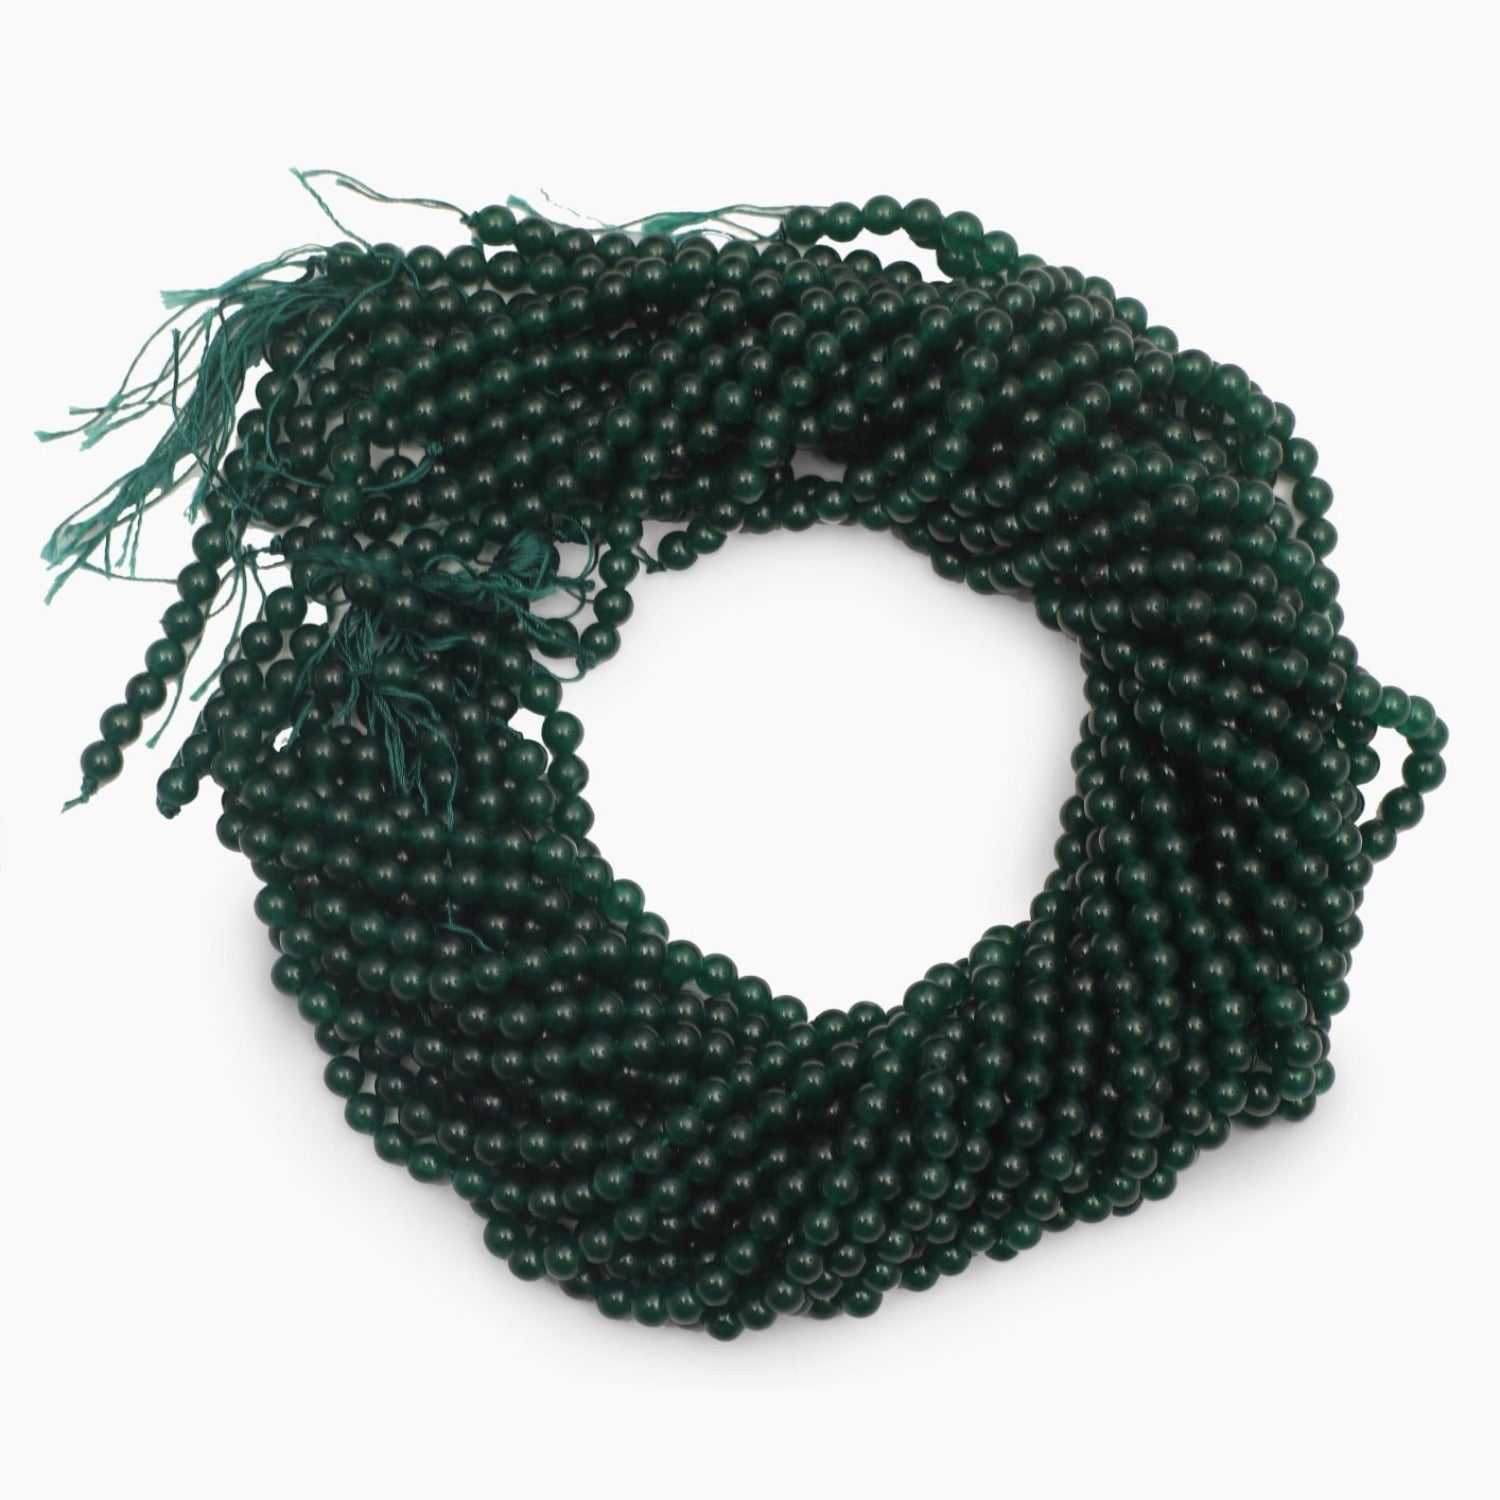 Green Jade Dyed Quartz 5mm Beads- Sold Per Strand